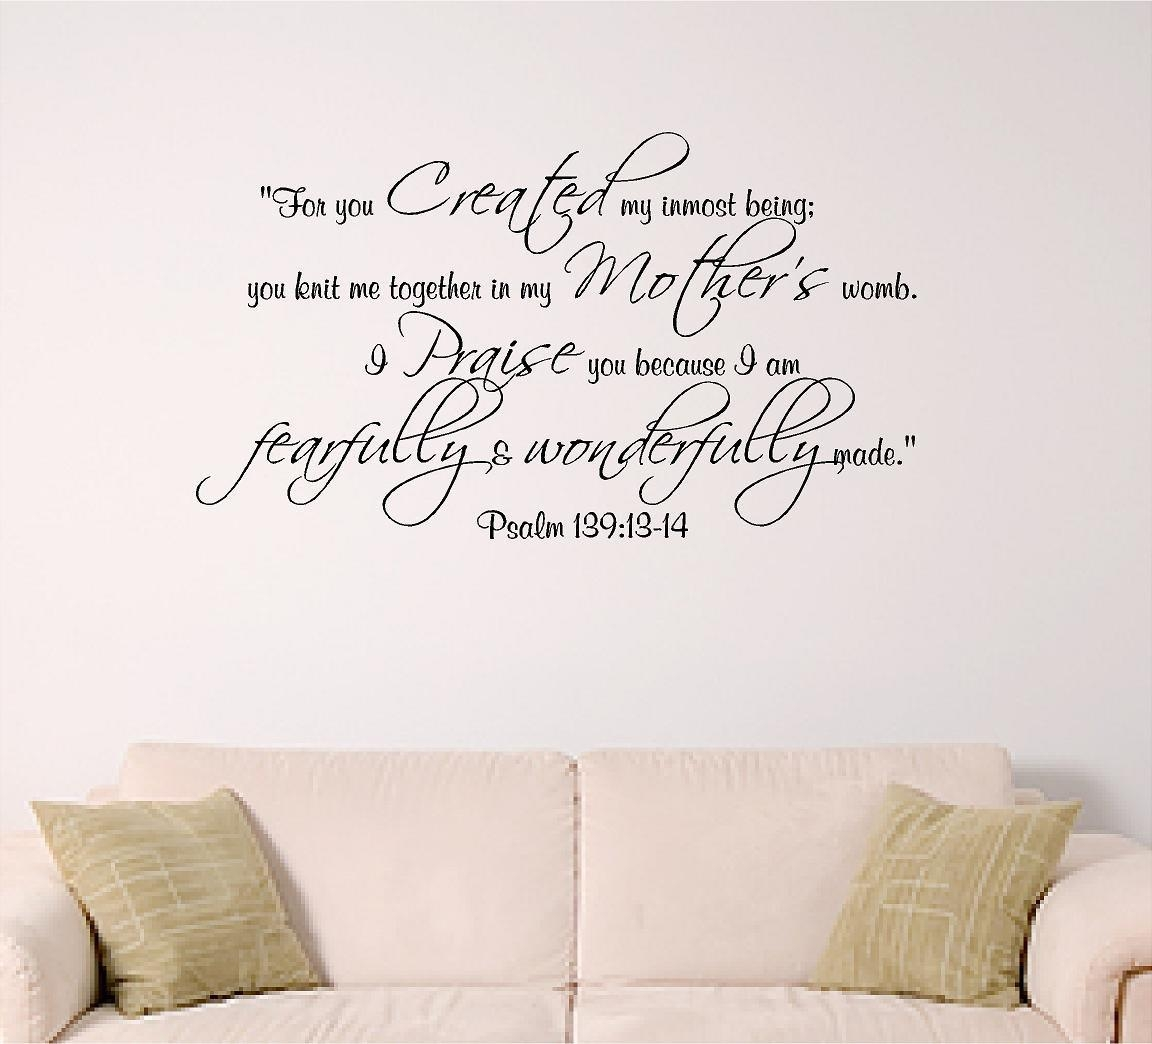 23 Wall Decals Bible Verses Nursery, Christian Bible Verse Vinyl Pertaining To Nursery Bible Verses Wall Decals (Image 2 of 20)